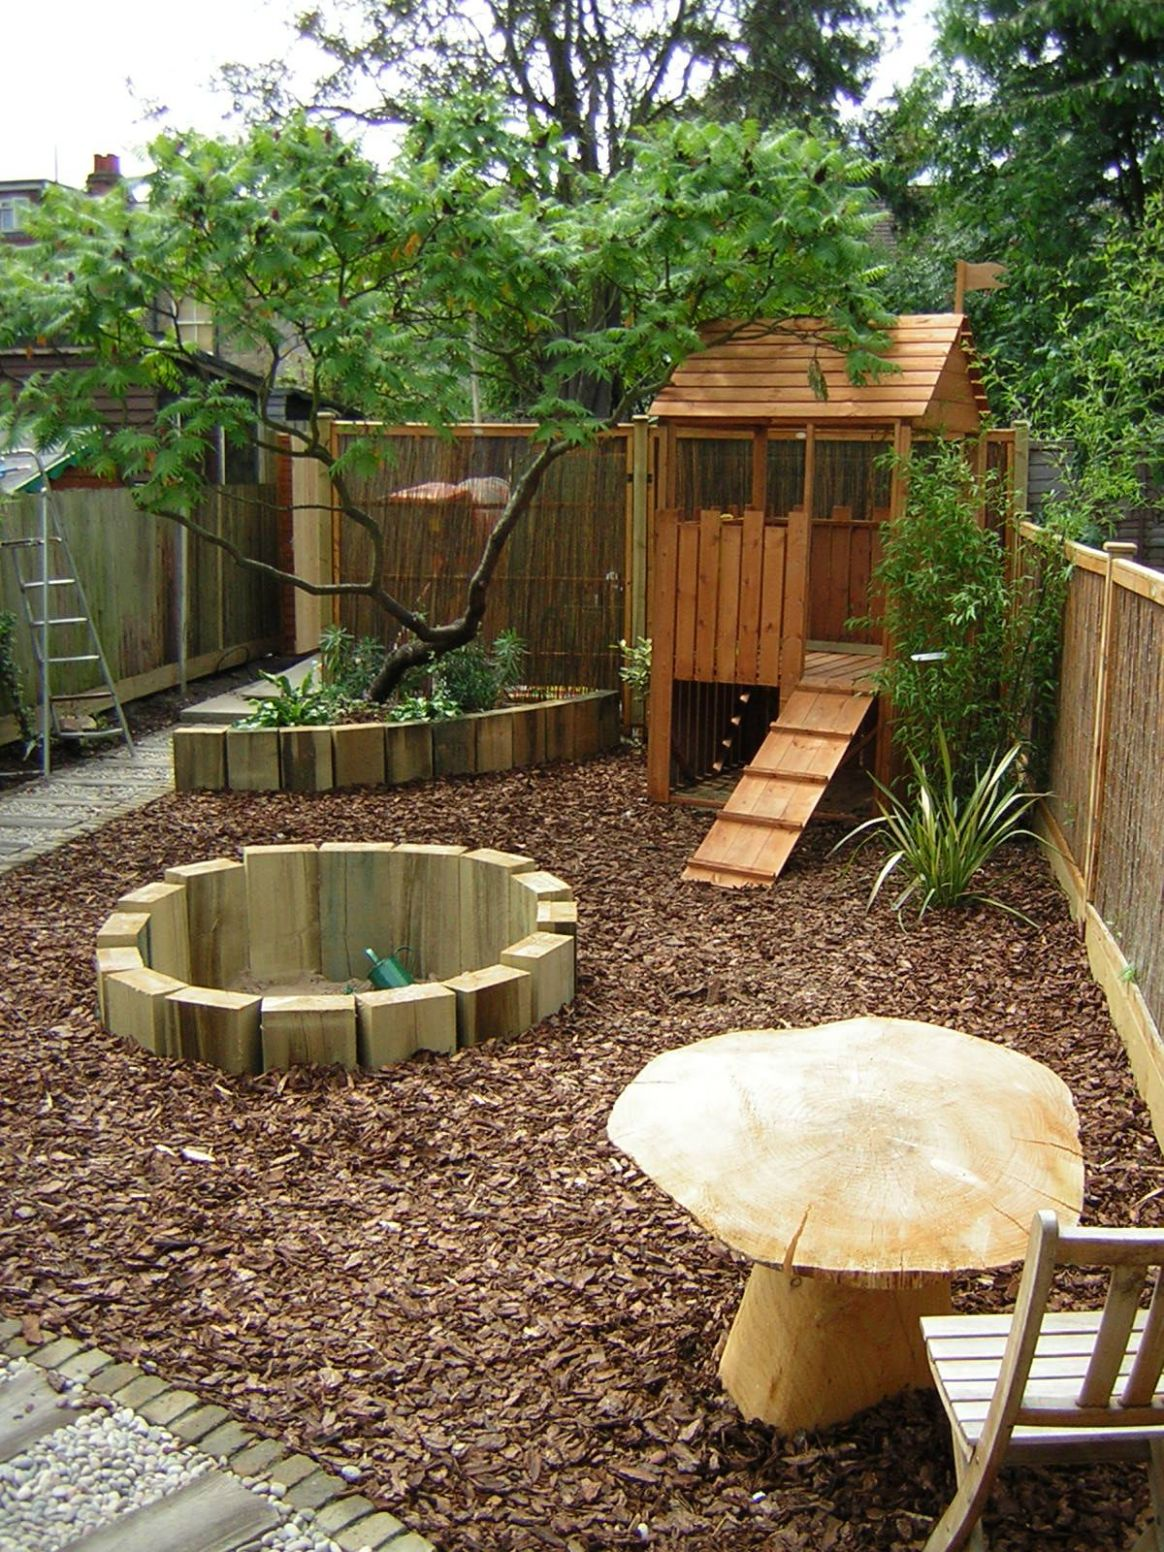 Play More Month | Backyard playground, Backyard, Backyard for kids - garden ideas for kids